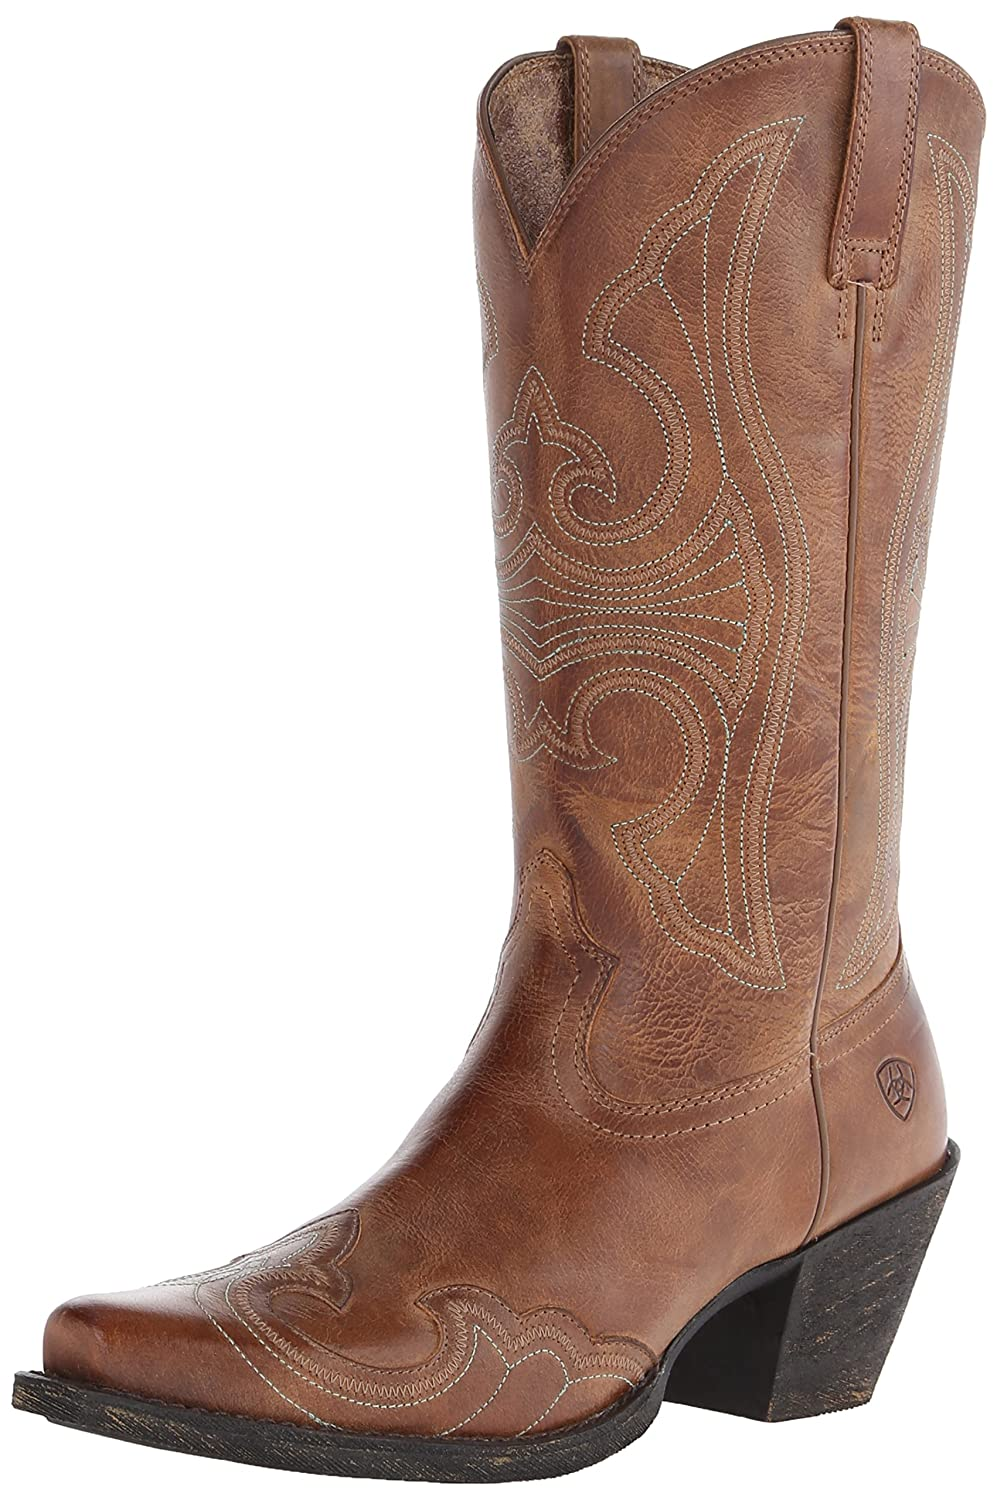 Ariat Women's Round up D Toe Wingtip Western Cowboy Boot B00NUII4KC 7 B-Medium US|Sandstorm